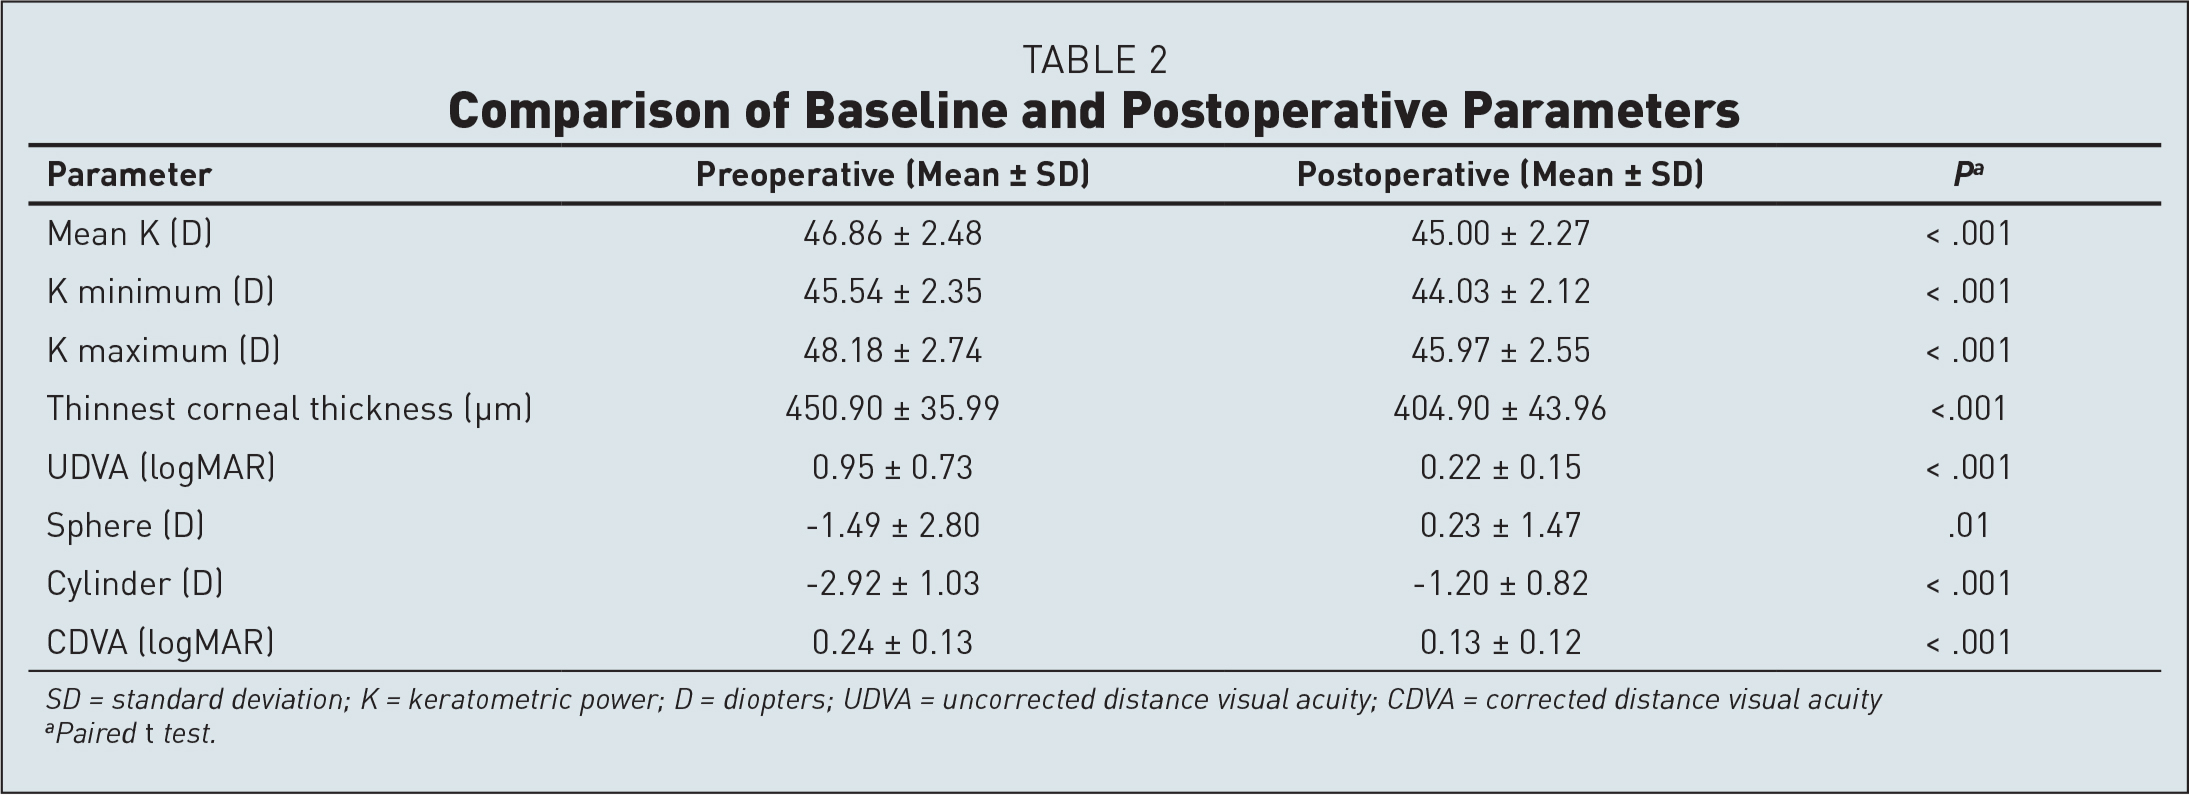 Comparison of Baseline and Postoperative Parameters